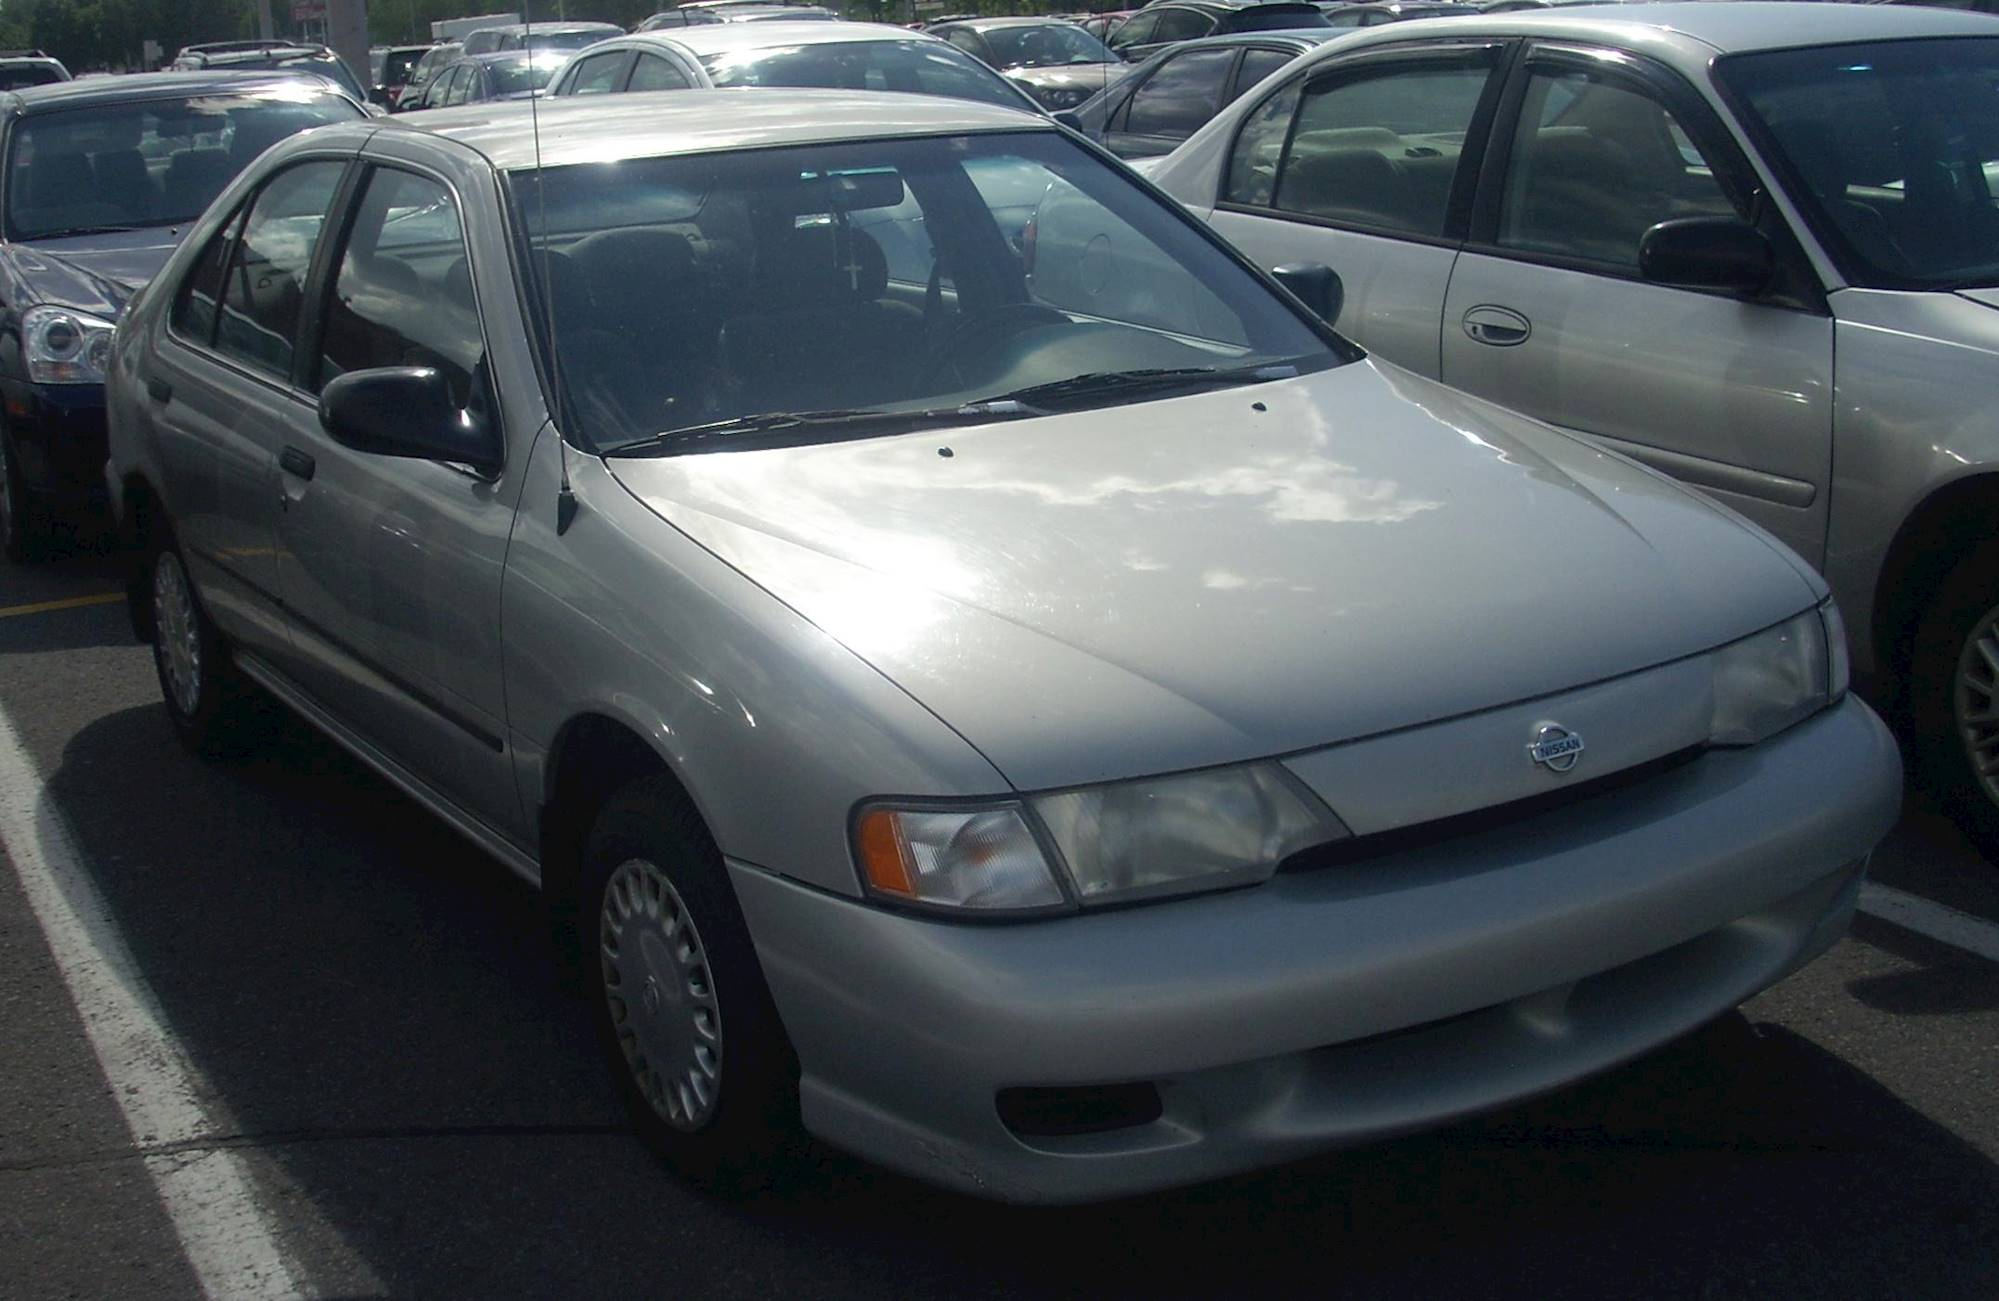 1999 nissan sentra xe sedan 1 6l manual 1999 nissan sentra xe sedan 1 6l manual